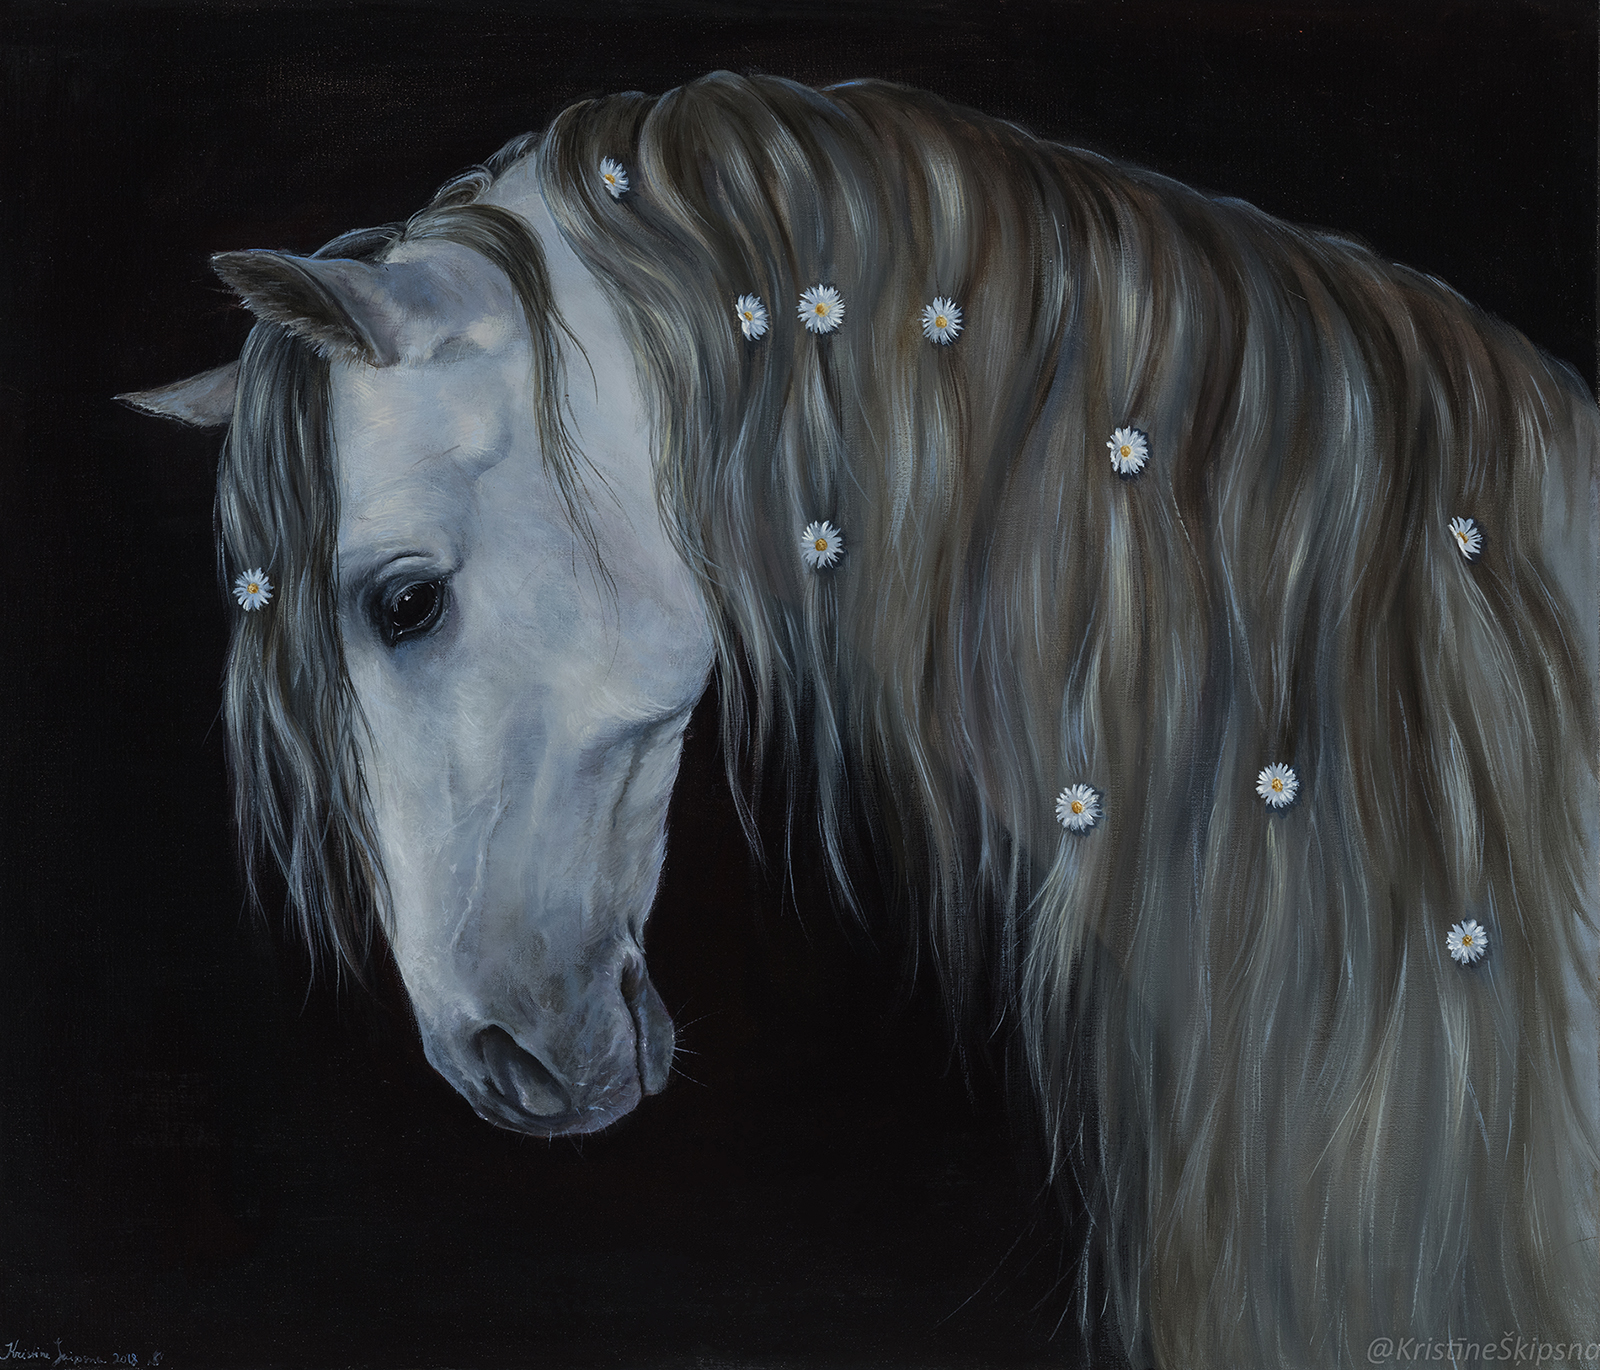 Andalusian princess, 60x70cm, oil on canvas, 2018